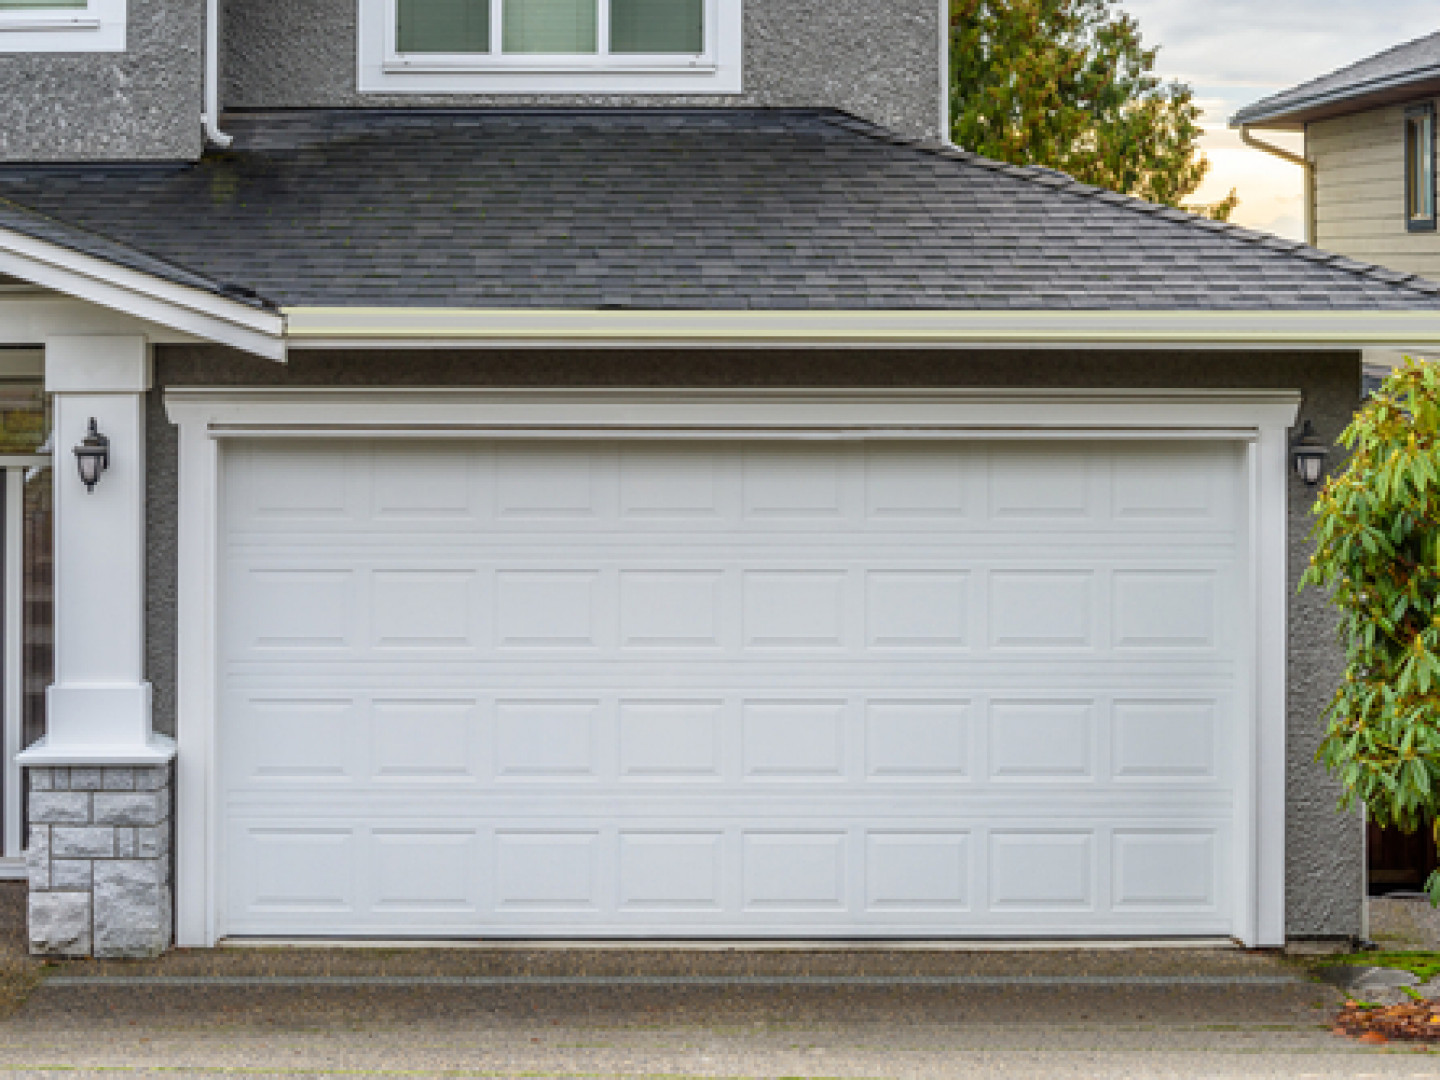 Grace Your Home With a Gorgeous Garage Door